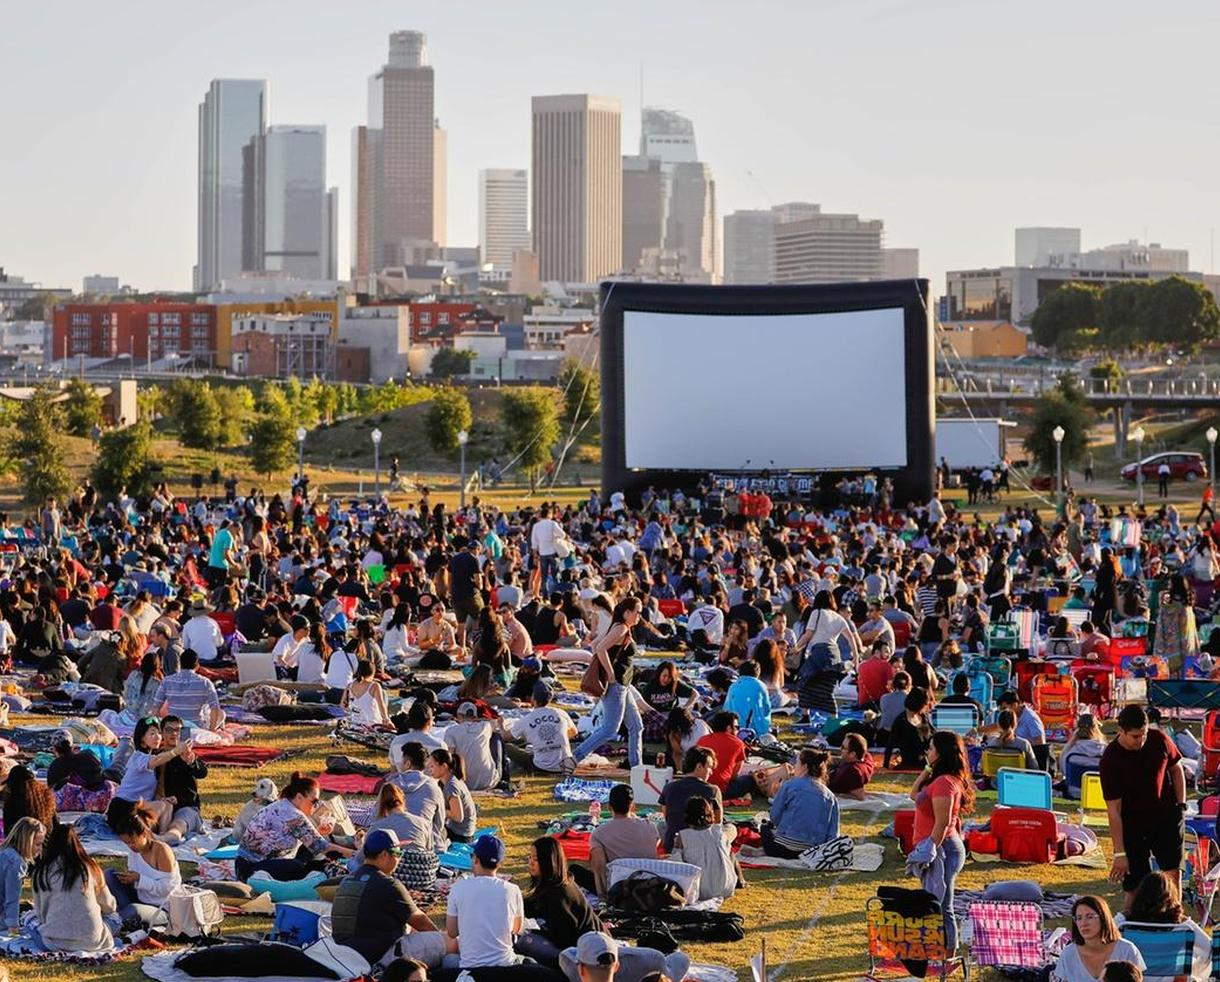 Street Food Cinema General Admission Tickets or Season Passes to Any Show!